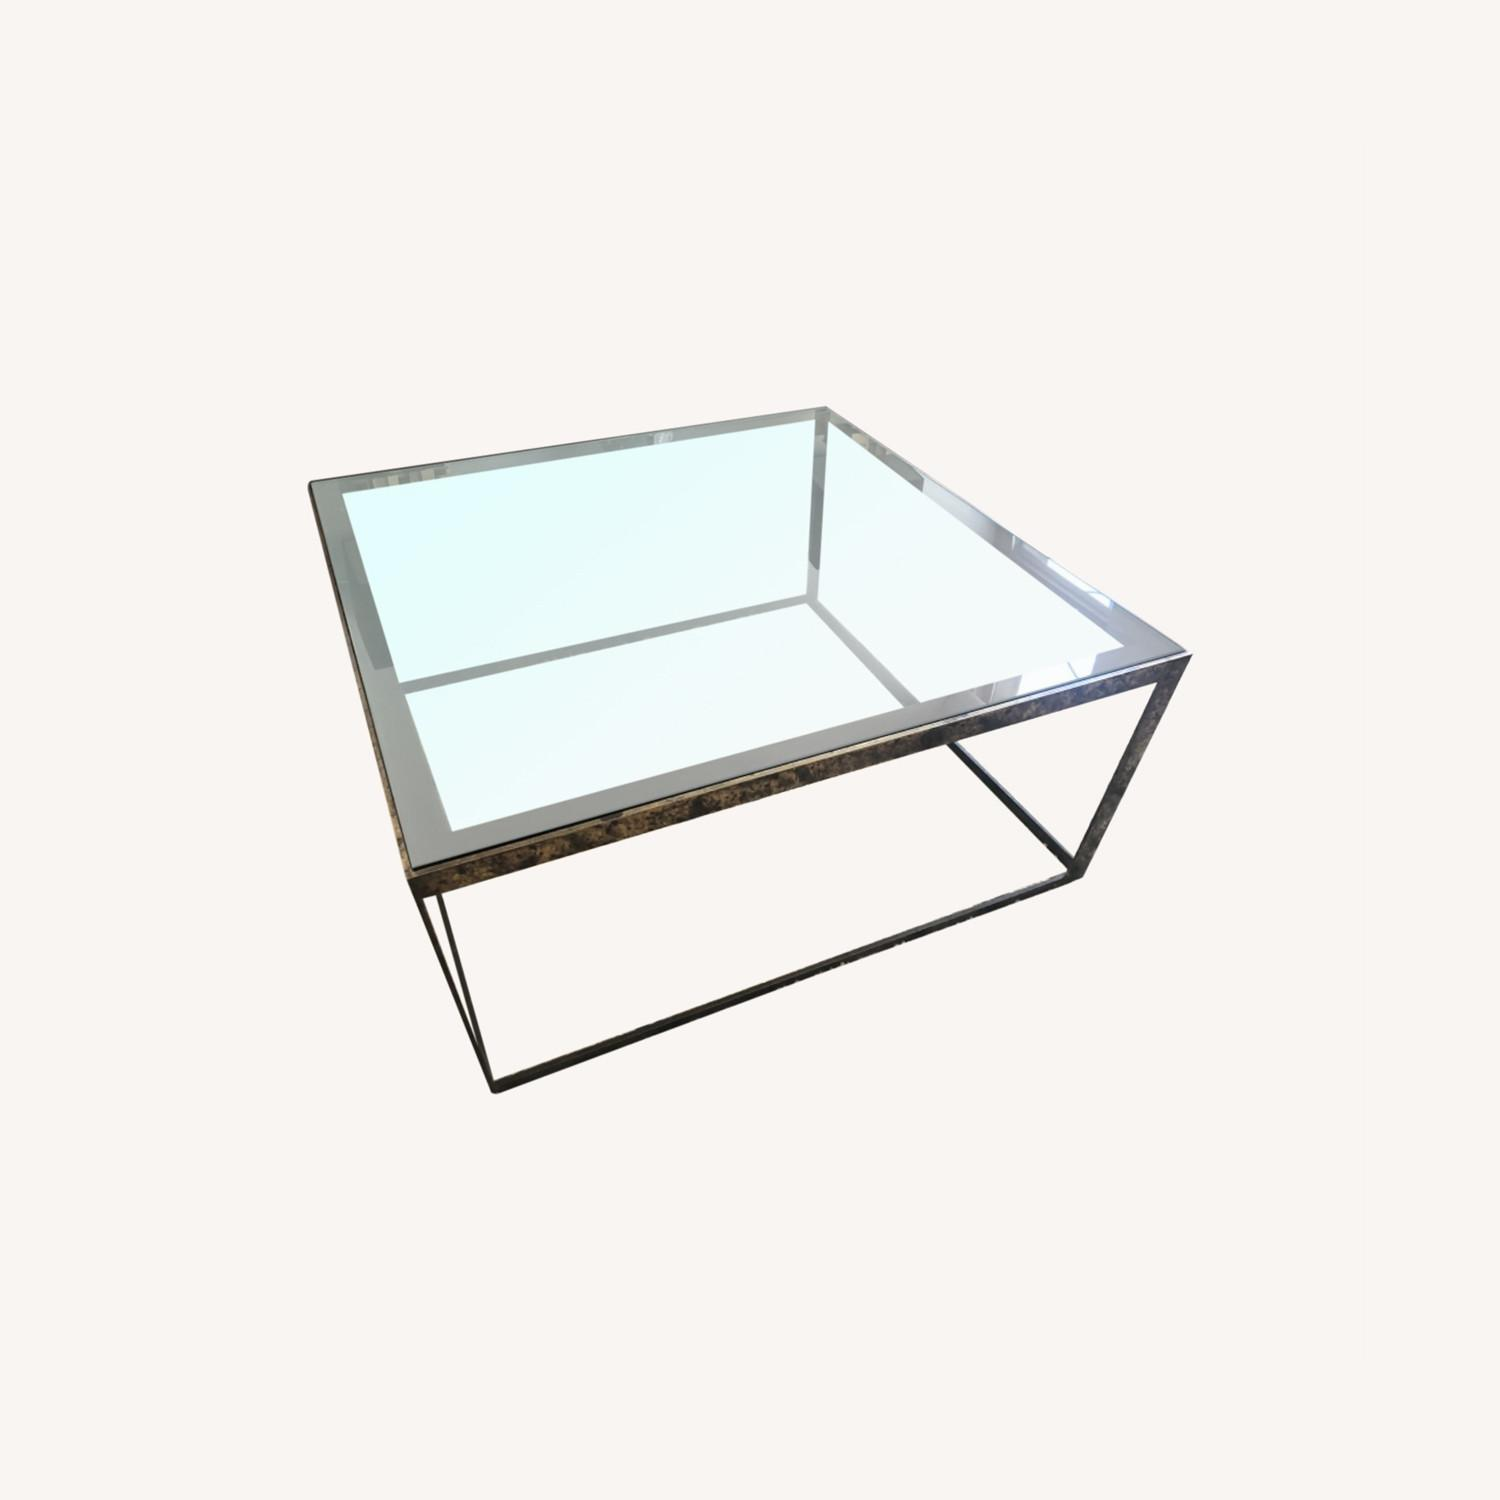 ABC Carpet and Home Brass and Tinted Glass Coffee Table - image-7